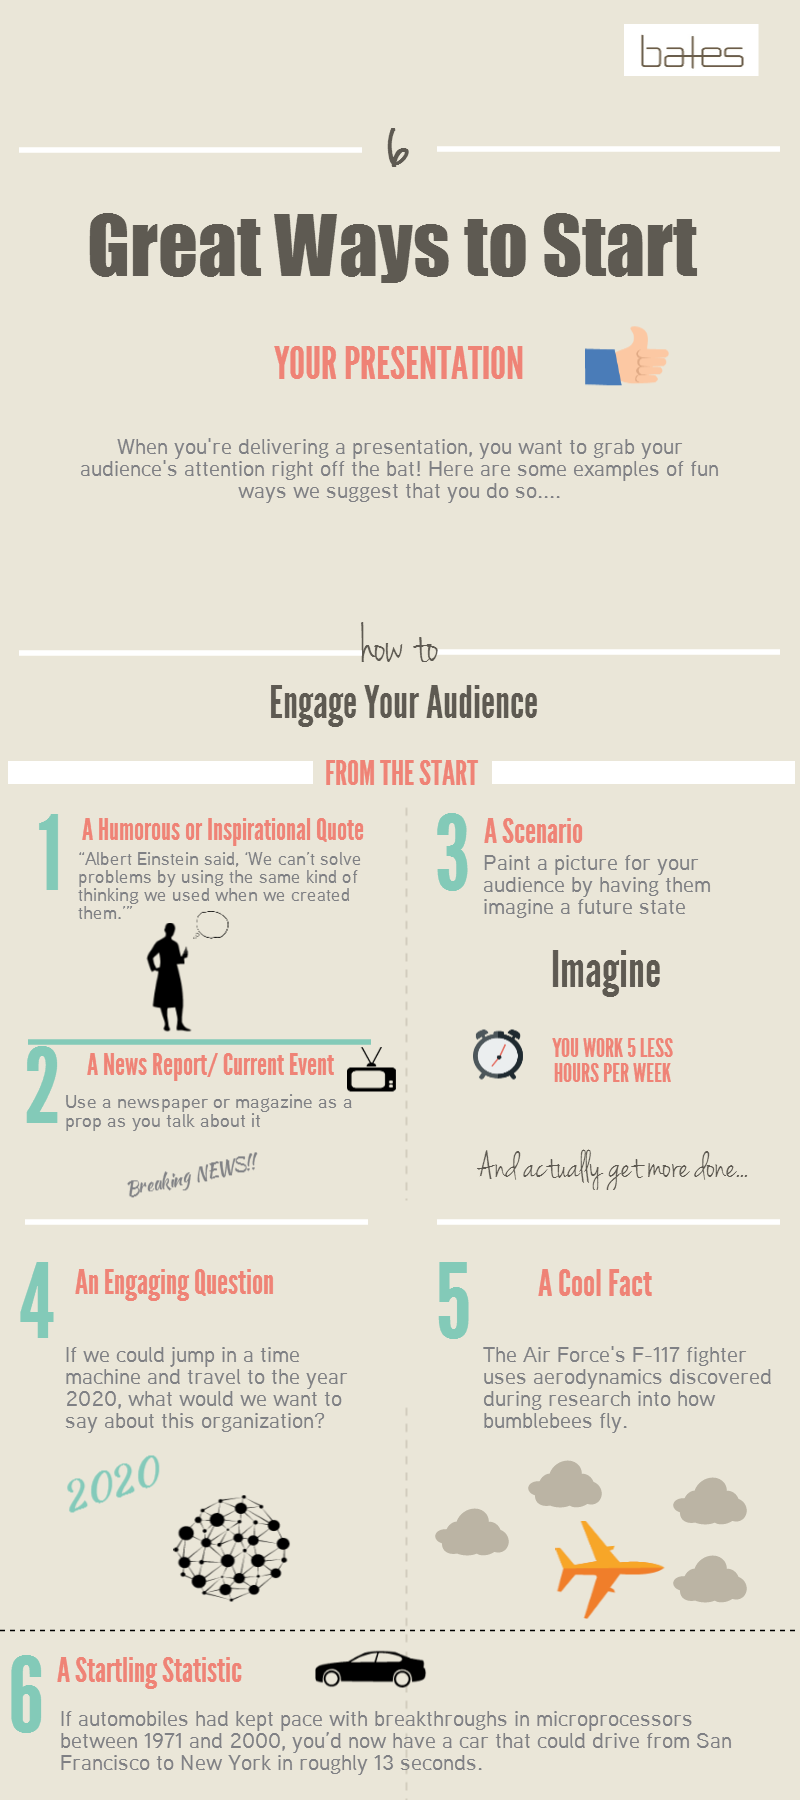 Six Great Ways To Start Your Presentation